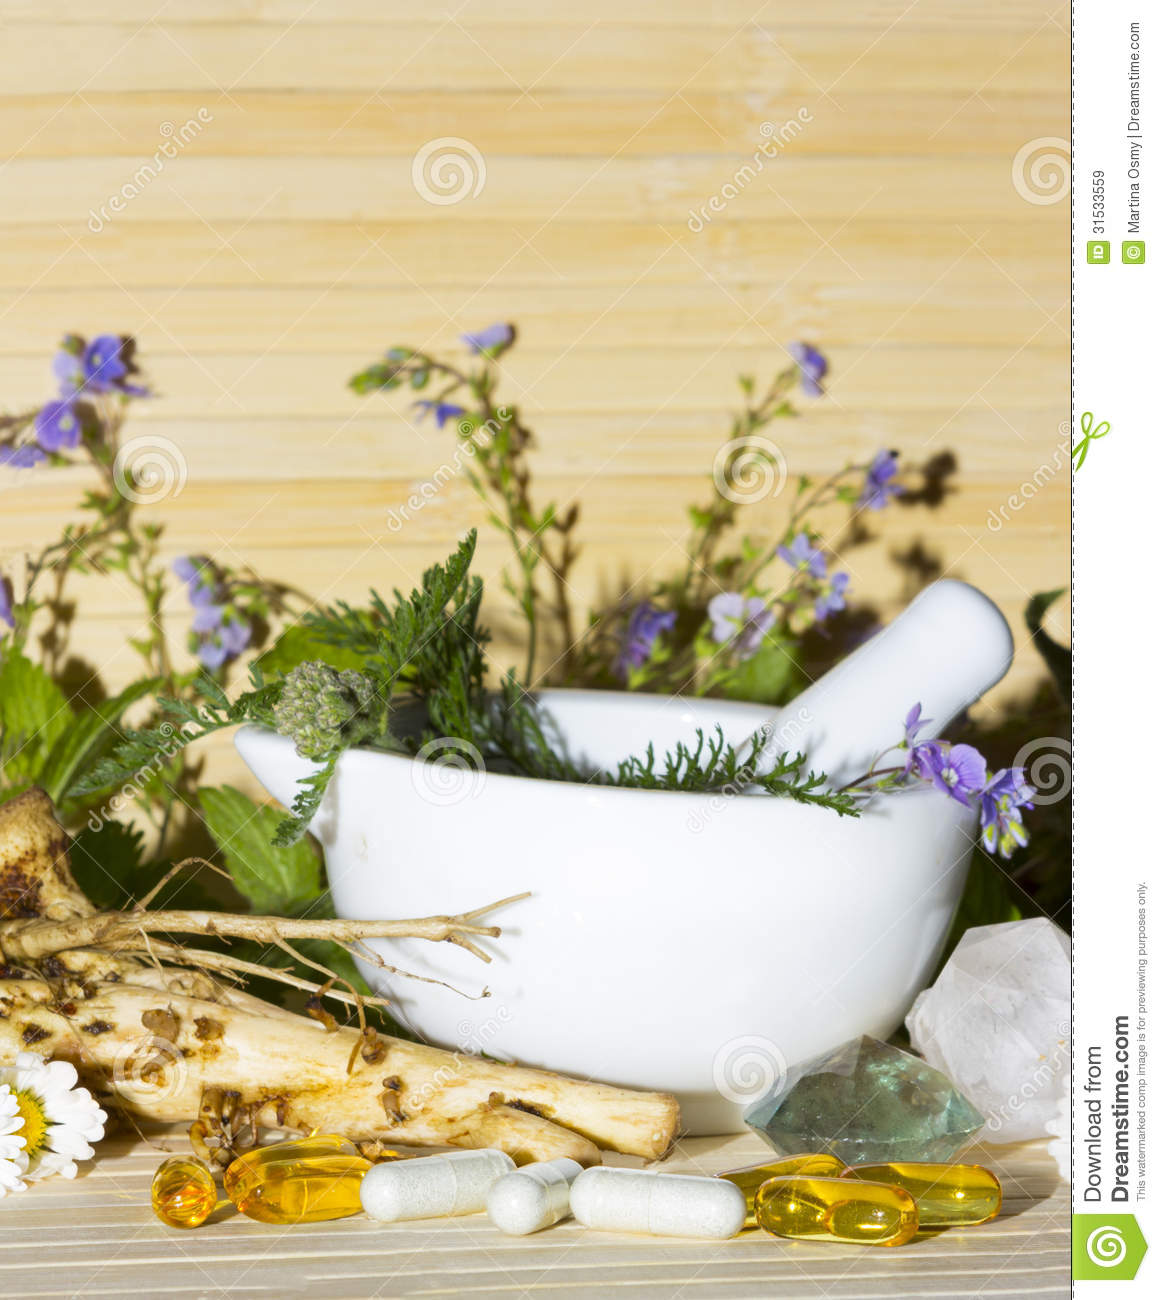 Natural Herbal Remedies And Supplements Stock Image - Image